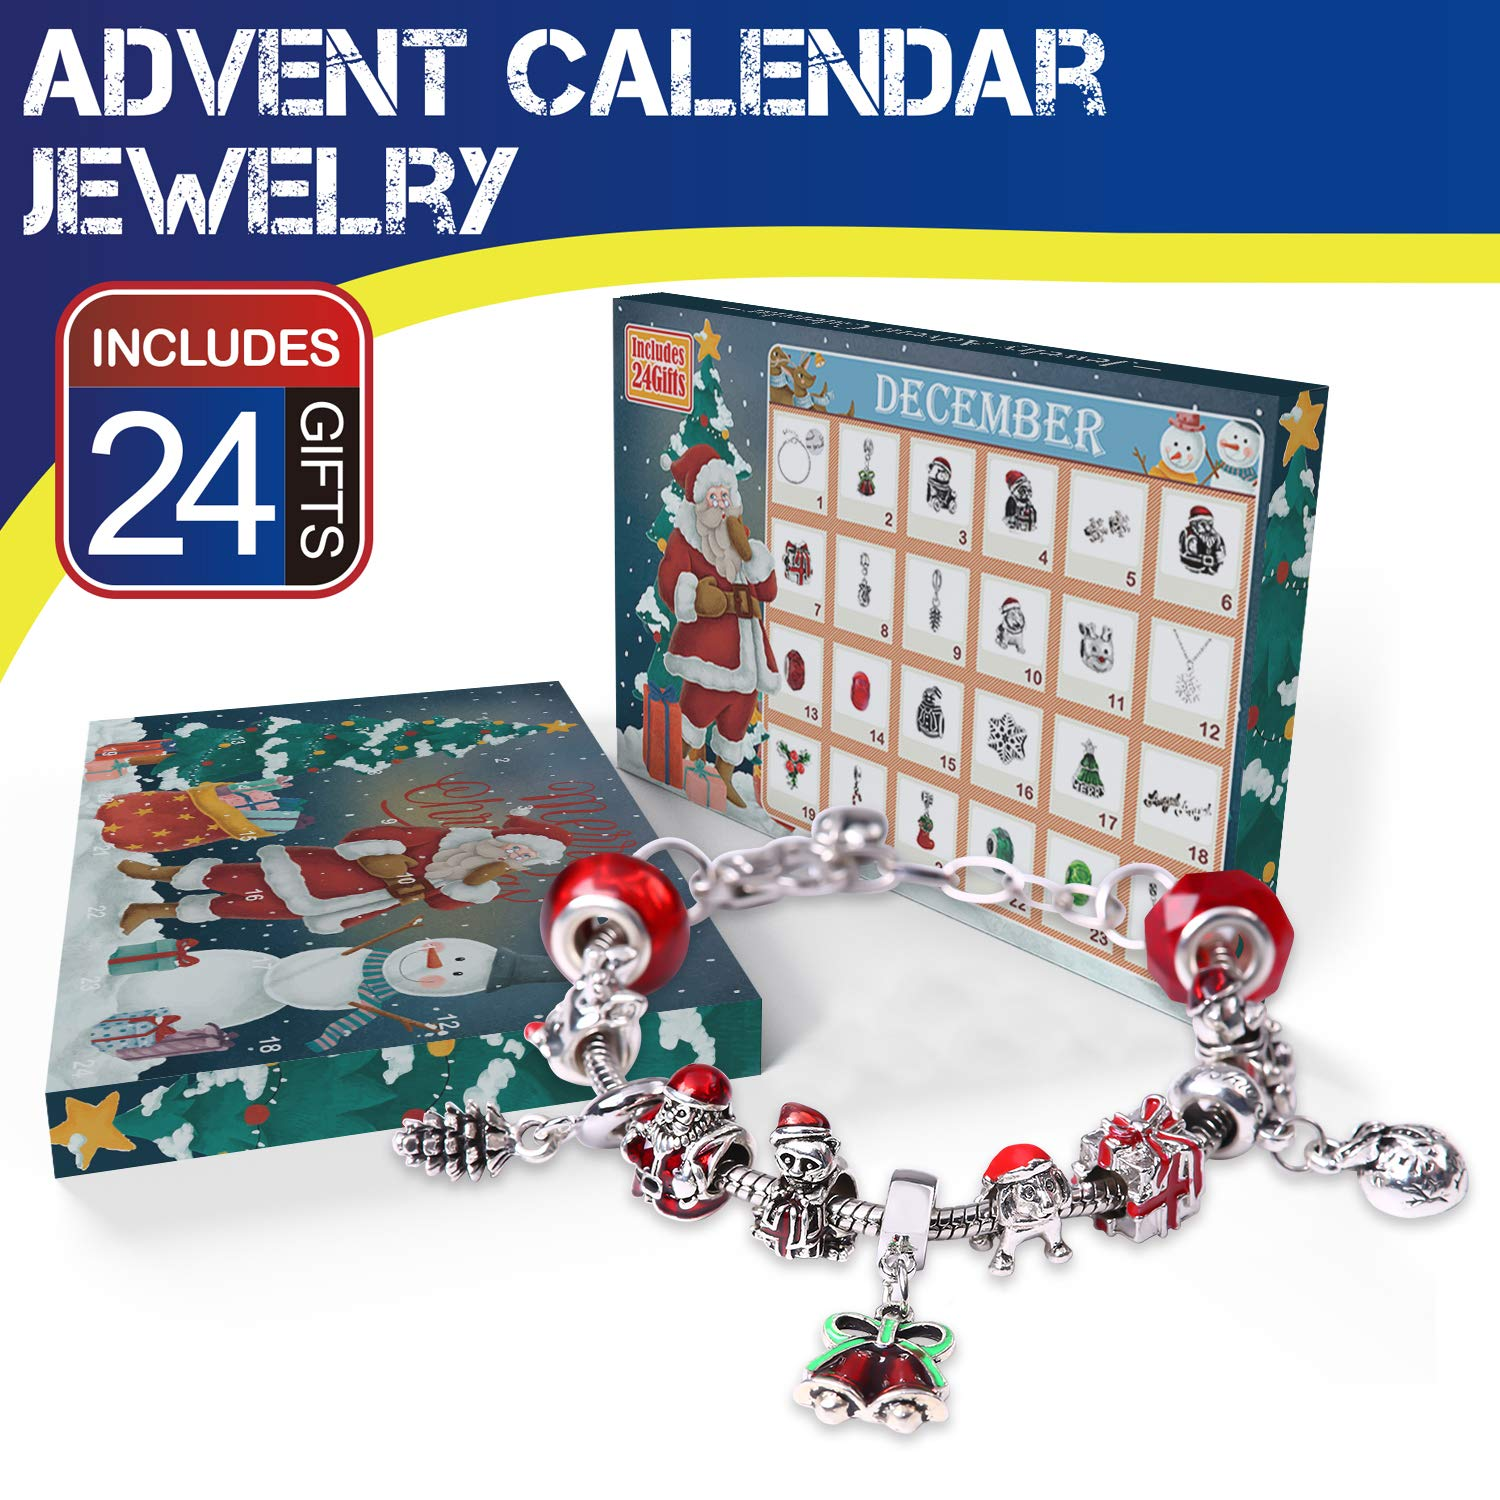 Christmas Advent Calendar 2018 Charm Bracelet 24 Days Countdown Calendars Jewelry Set for Kids/Childs New Year Gift - 1 Bracelet, 1 Necklace, 2 Pair Earrings, 20 DIY Charms Yun Nist